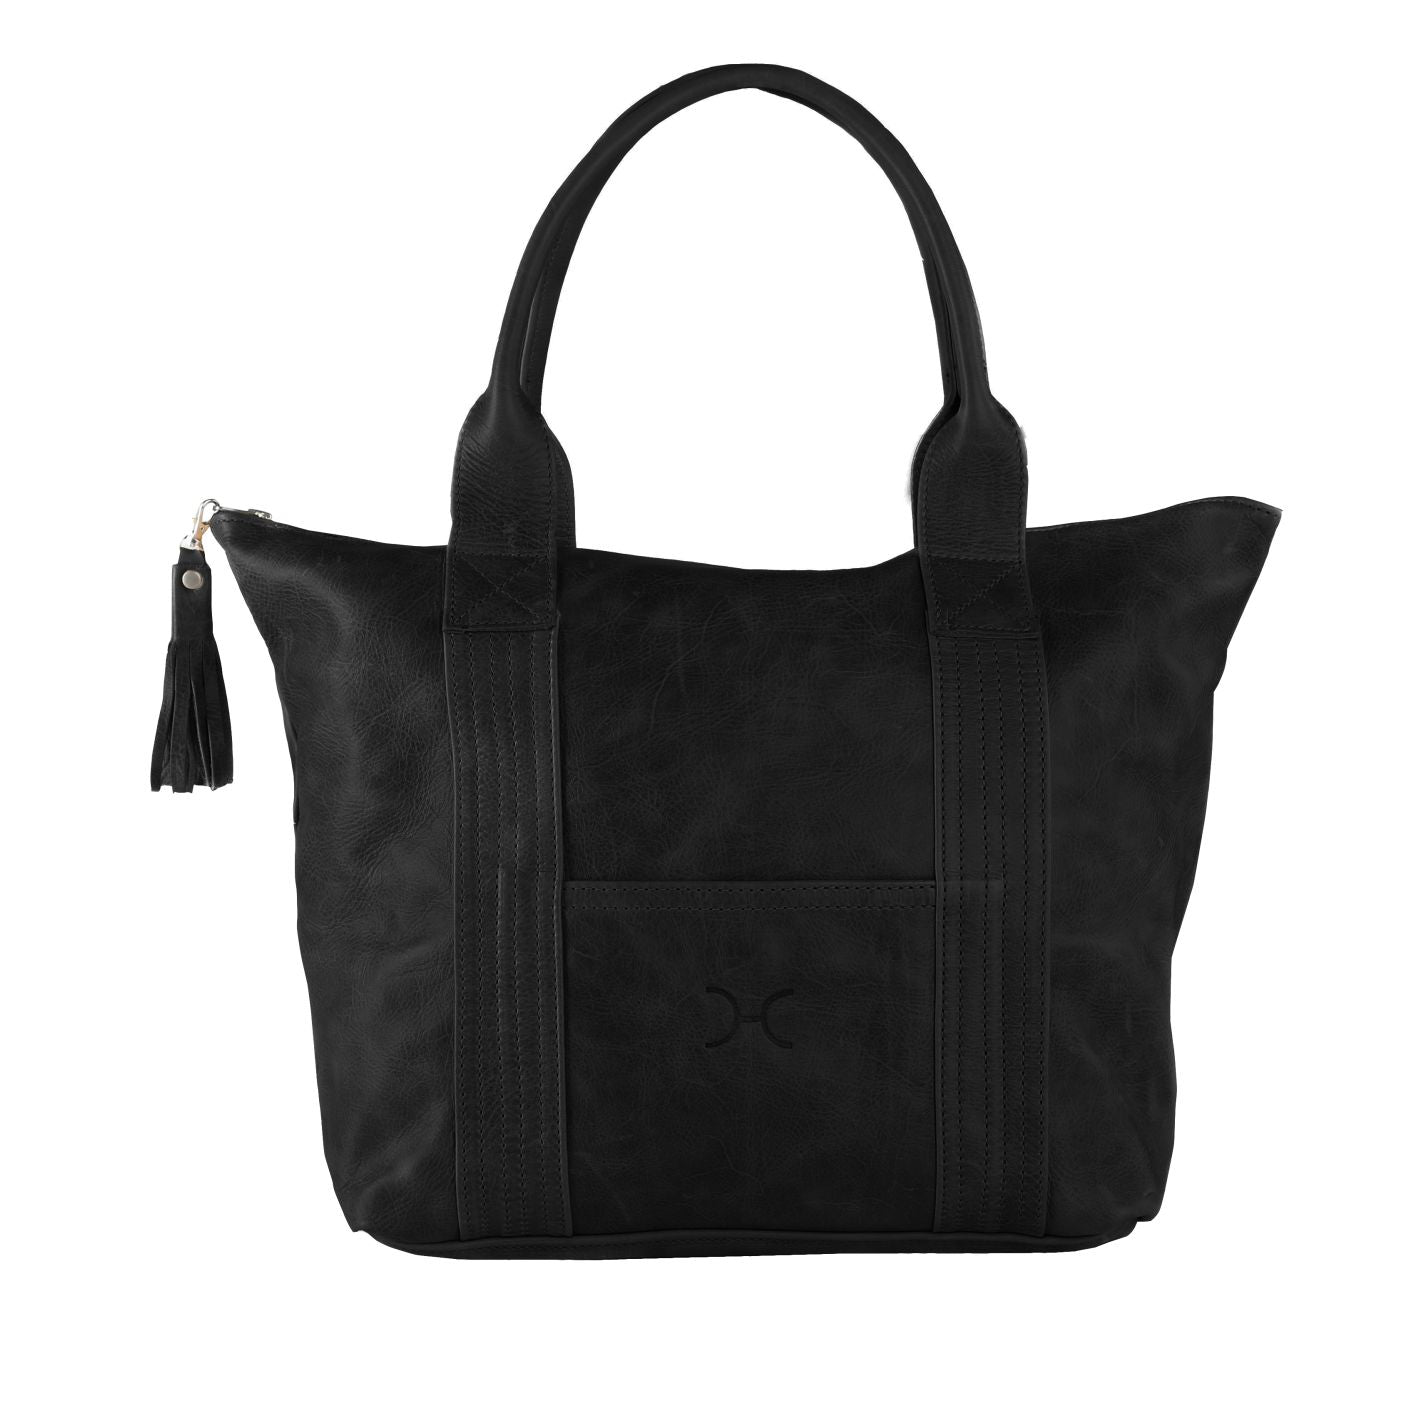 Thandana Dan Dan Bag - Black - Zufrique Boutique